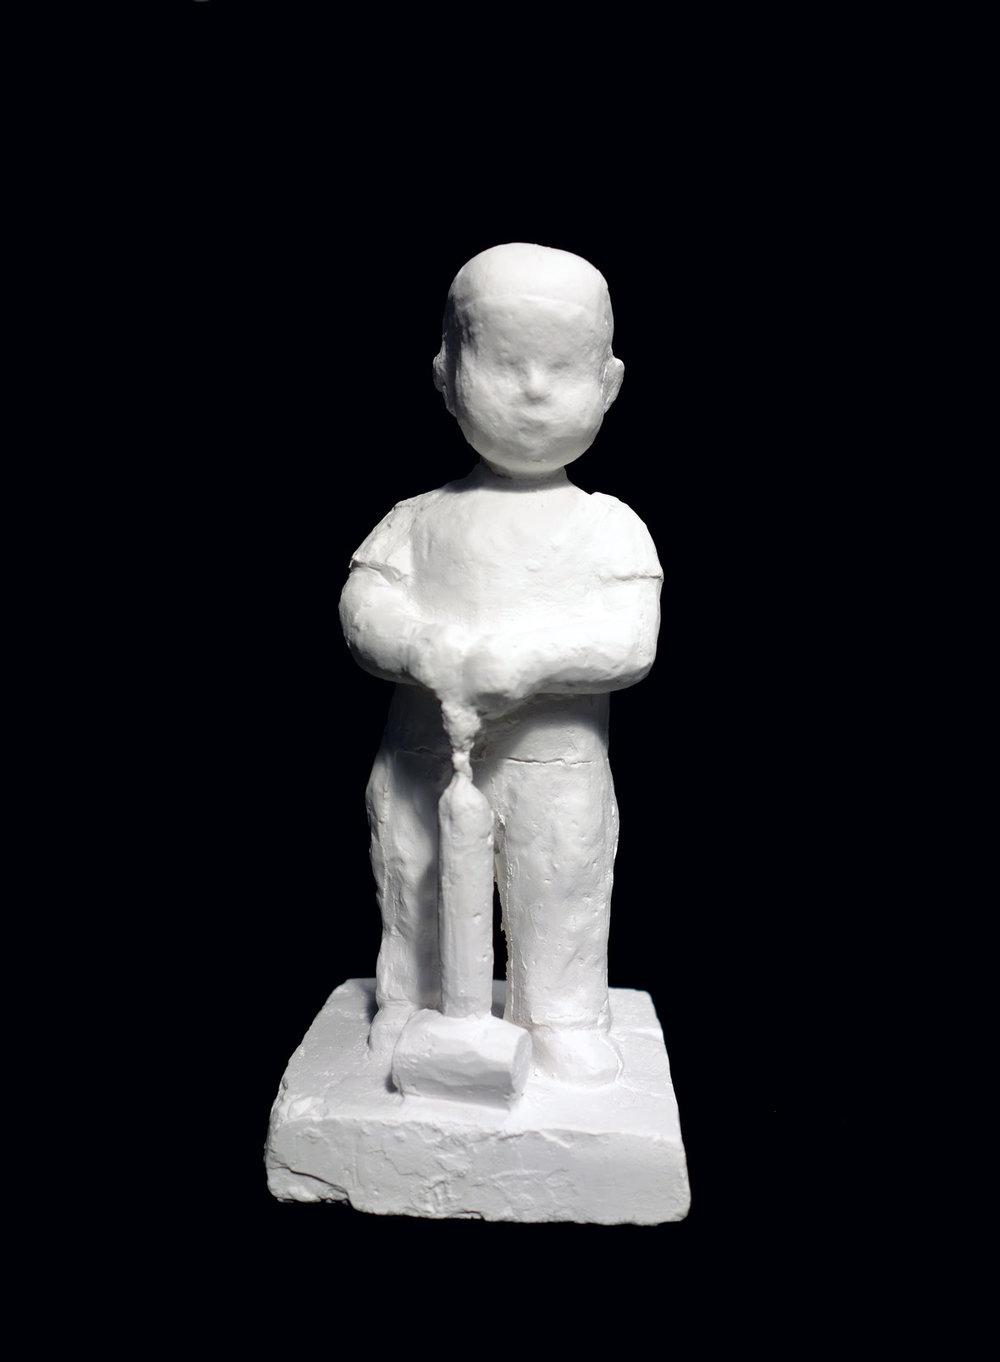 "Astrid Noack ""Boy with insect sprayer"" (Gypsum, 15cm, original was from 1938). This new-casting from 2015 comes in 25 numbered copies. Produced to raise supporting funds for A.N.A. Courtesy of Nina J Gallery, Copenhagen. Photo by THE WINTER OFFICE, 2019."